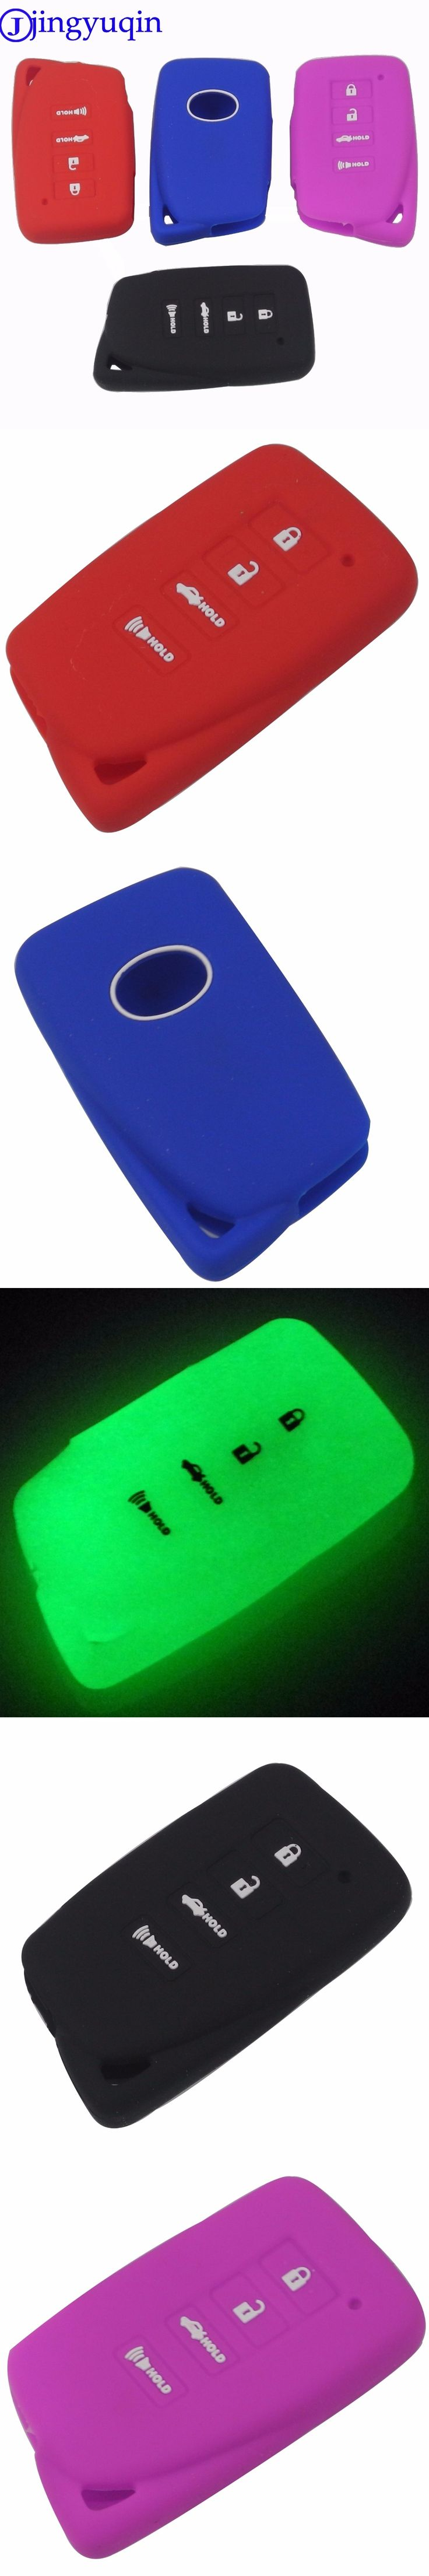 jingyuqin Key Case Cover For Lexus 300h/ES350/GS200/GS350/GSF/IS200t/IS300/IS350/LX570/NX/RC200t/RC300/RC350/RCF/RX350/RX450h